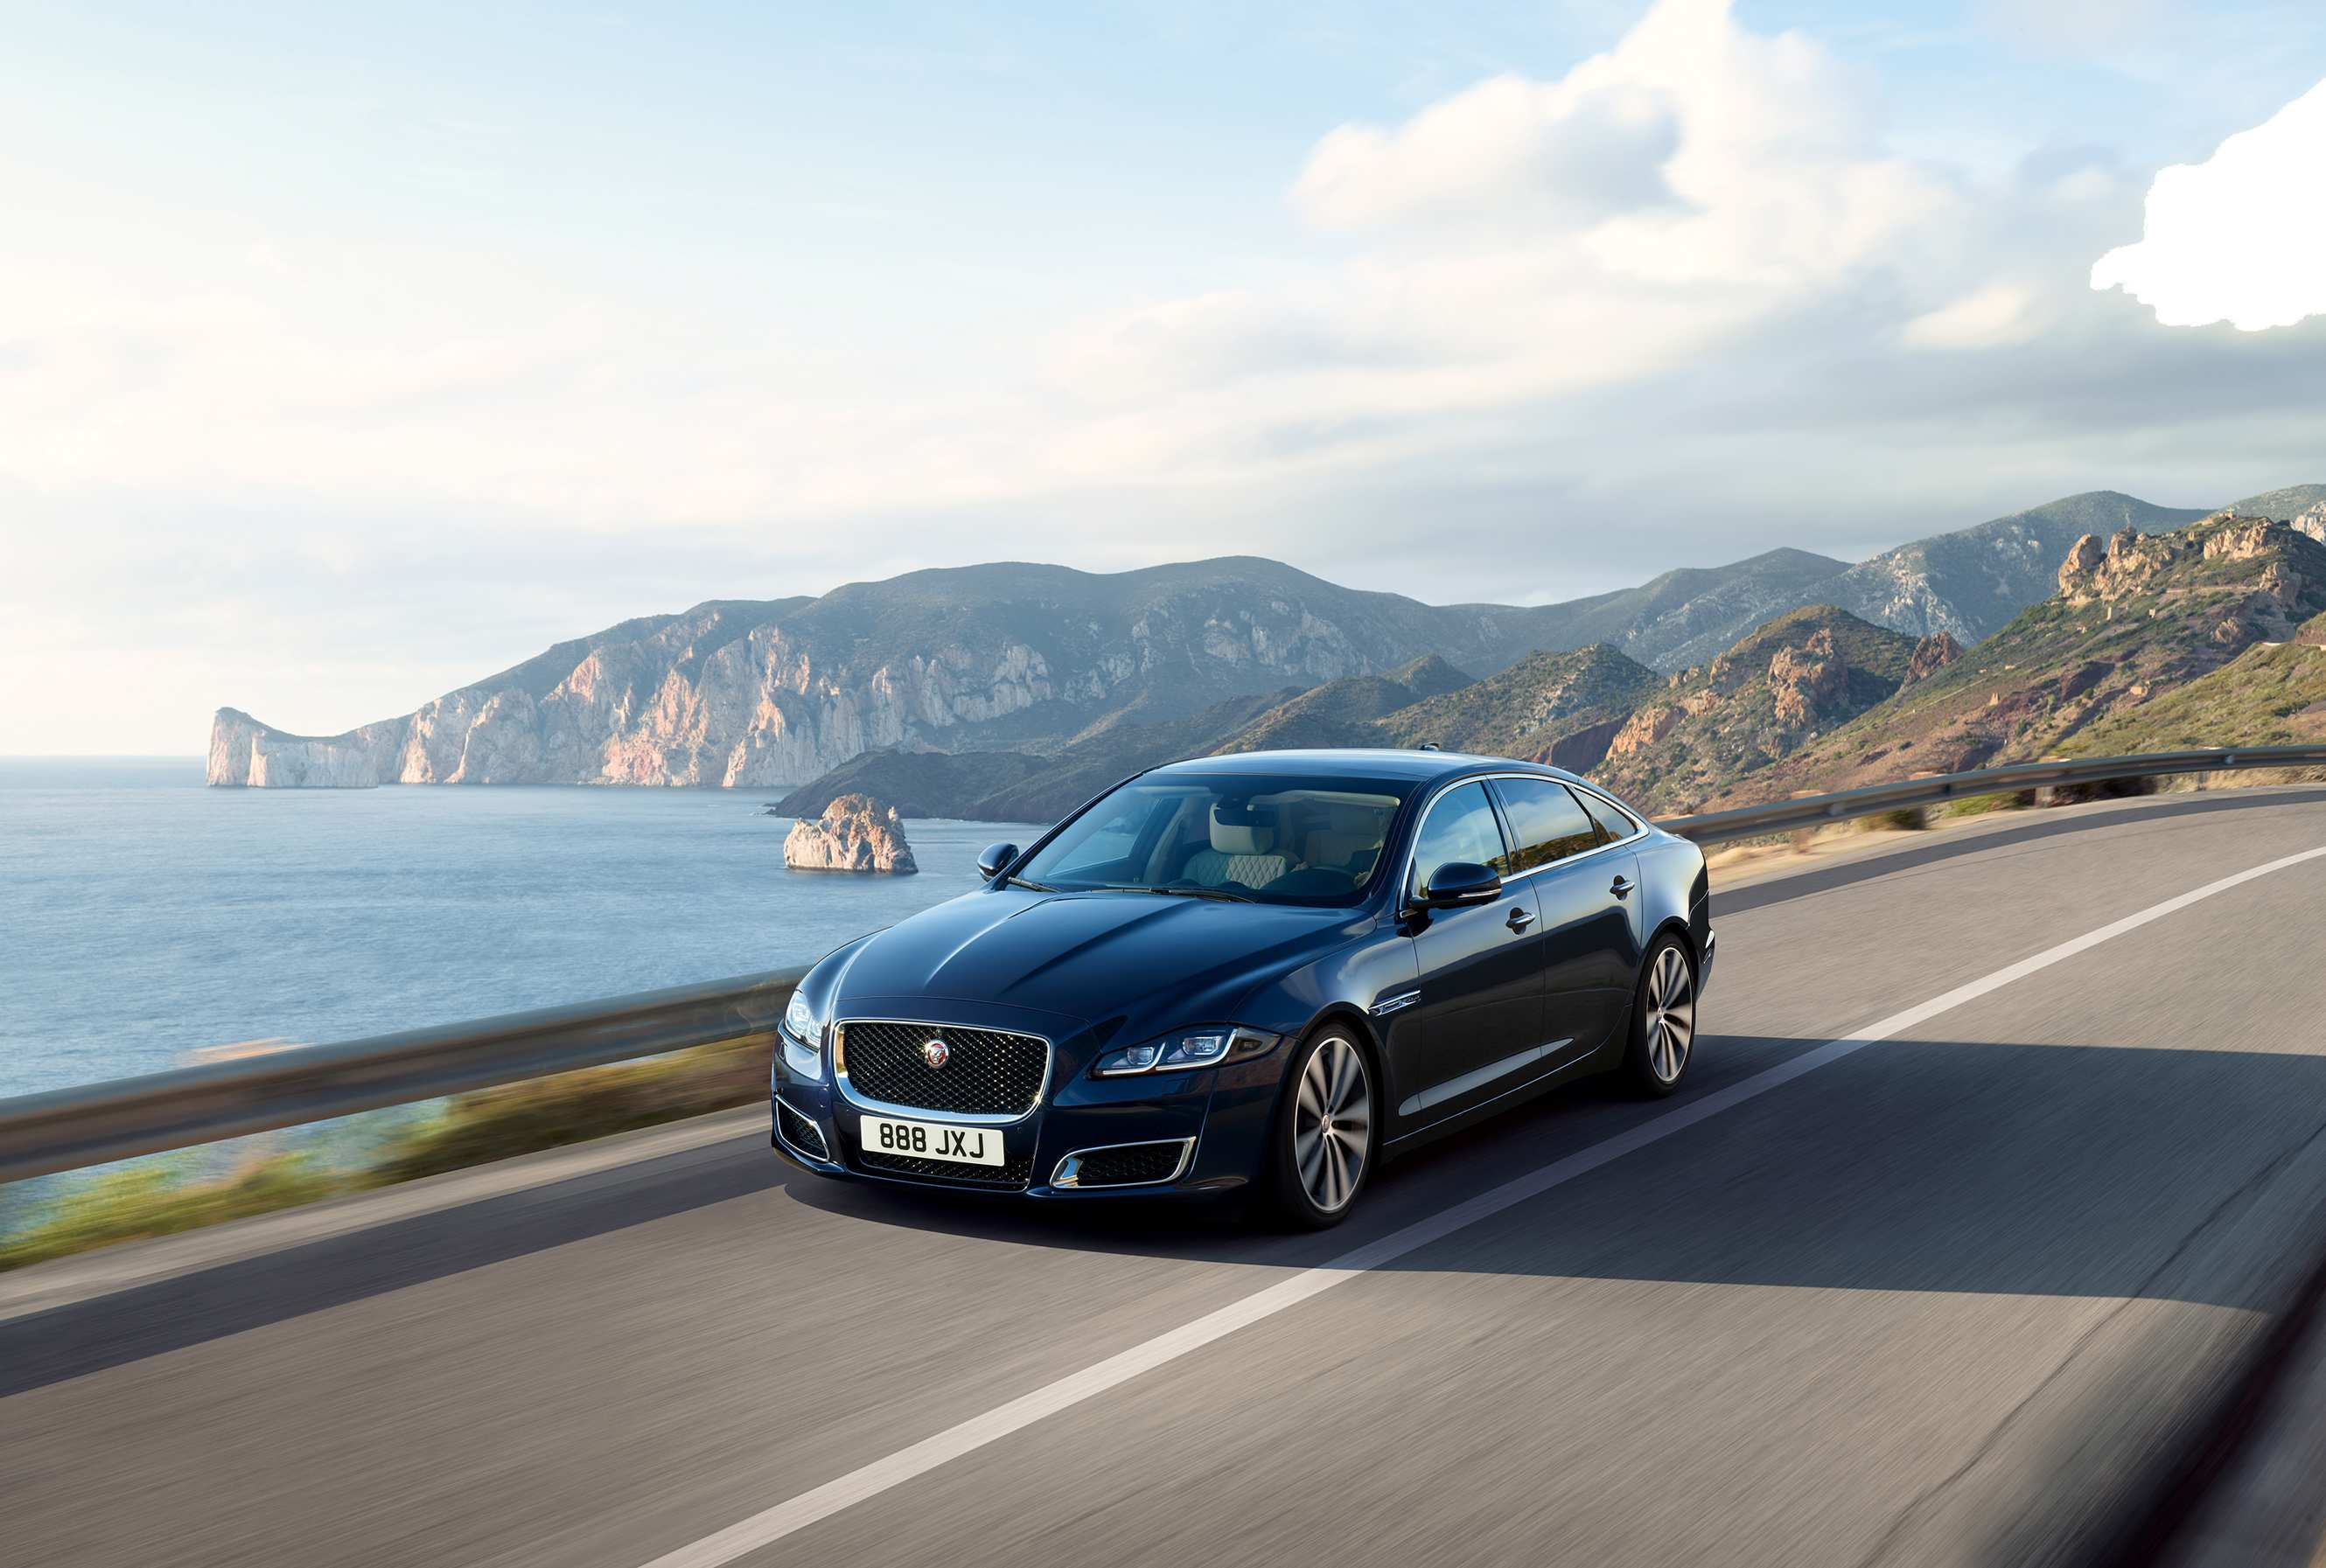 71 Gallery of 2020 Jaguar Xe Build Research New for 2020 Jaguar Xe Build